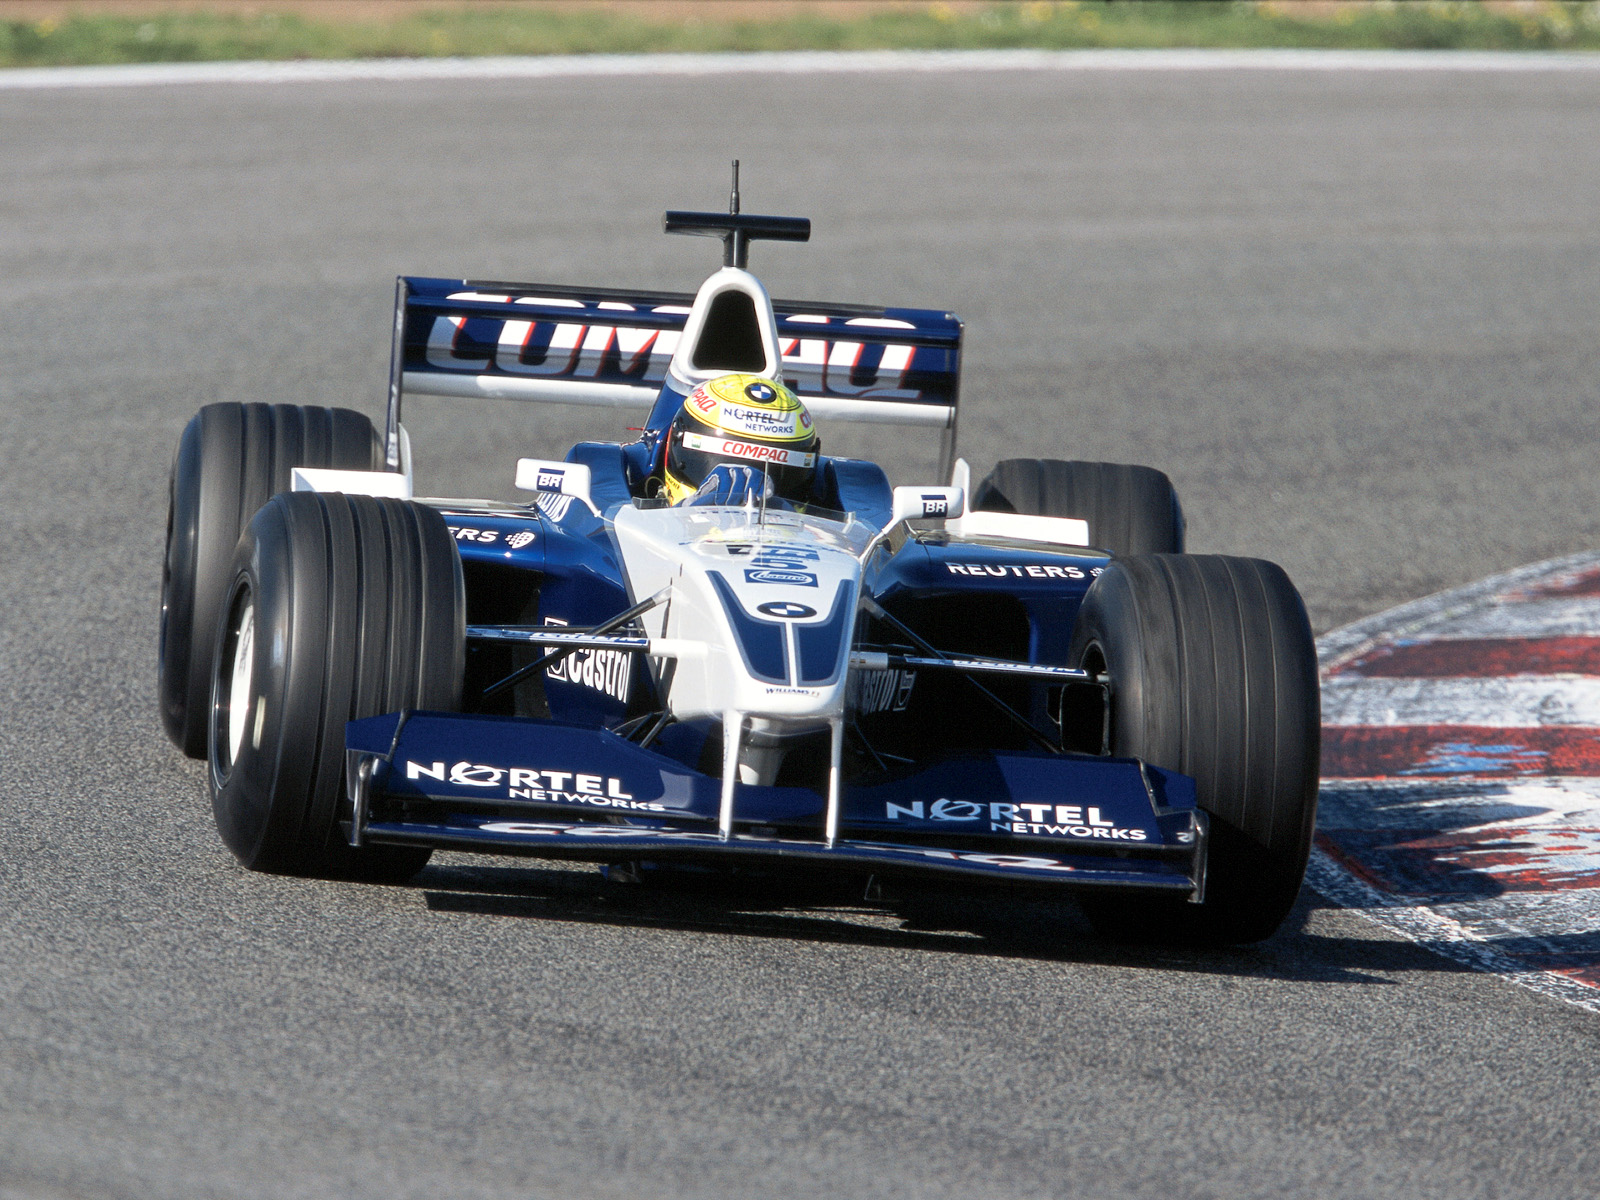 Williams fw23 photo - 10